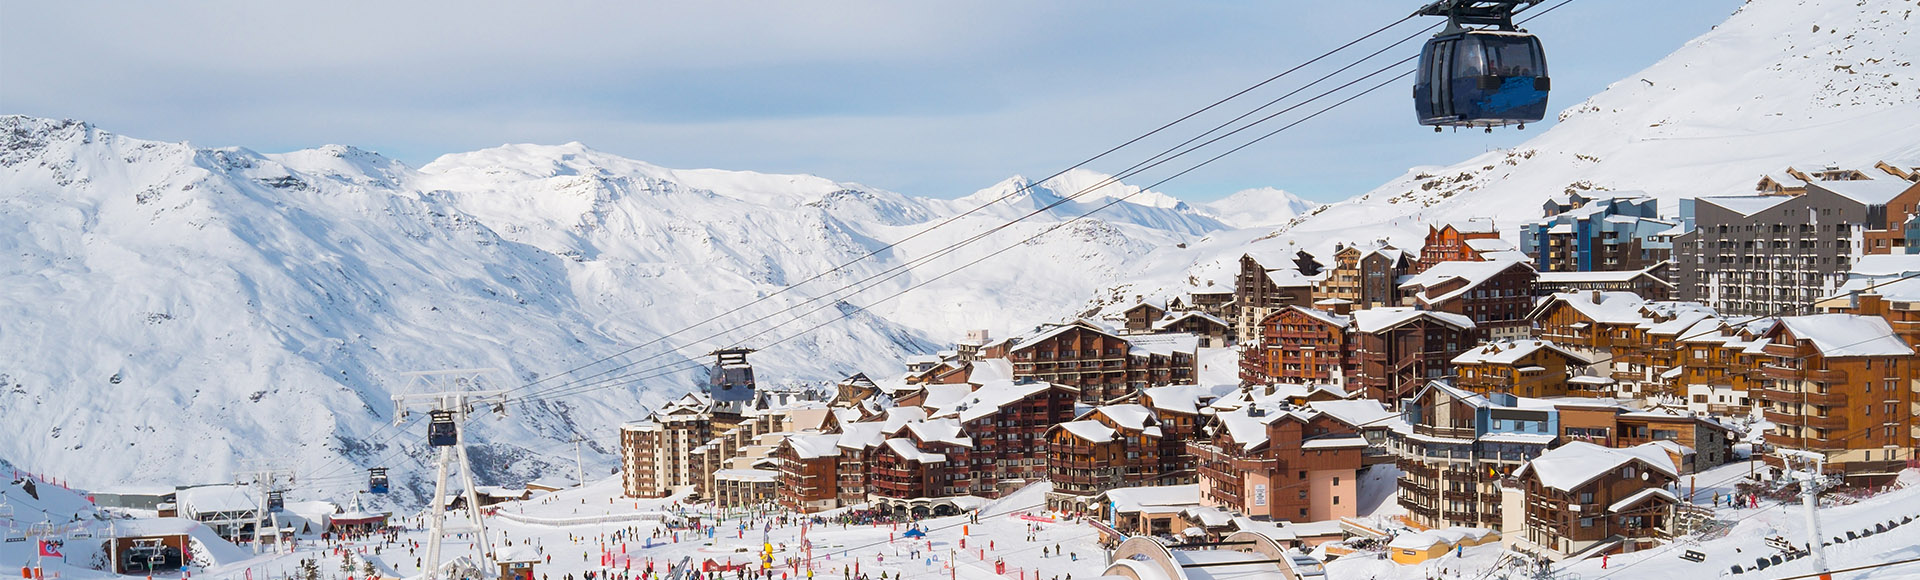 Skireiser til Val Thorens